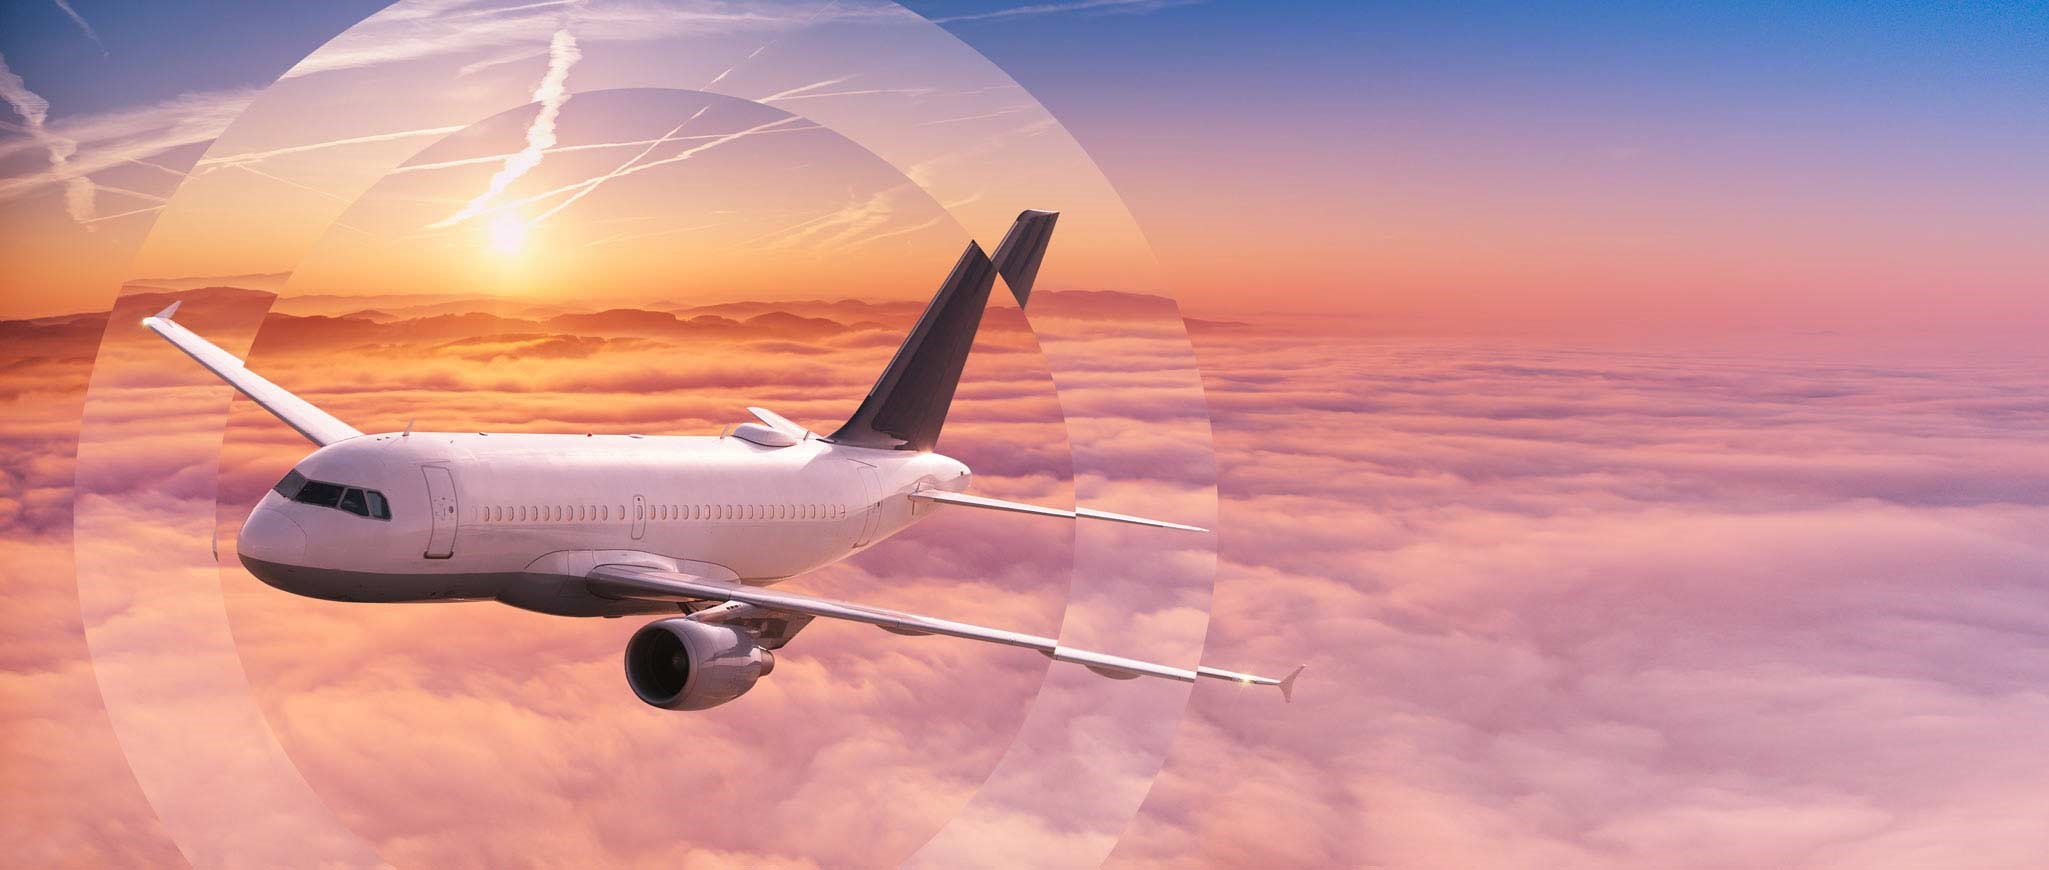 Eclipse Global Connectivity commercial aviation